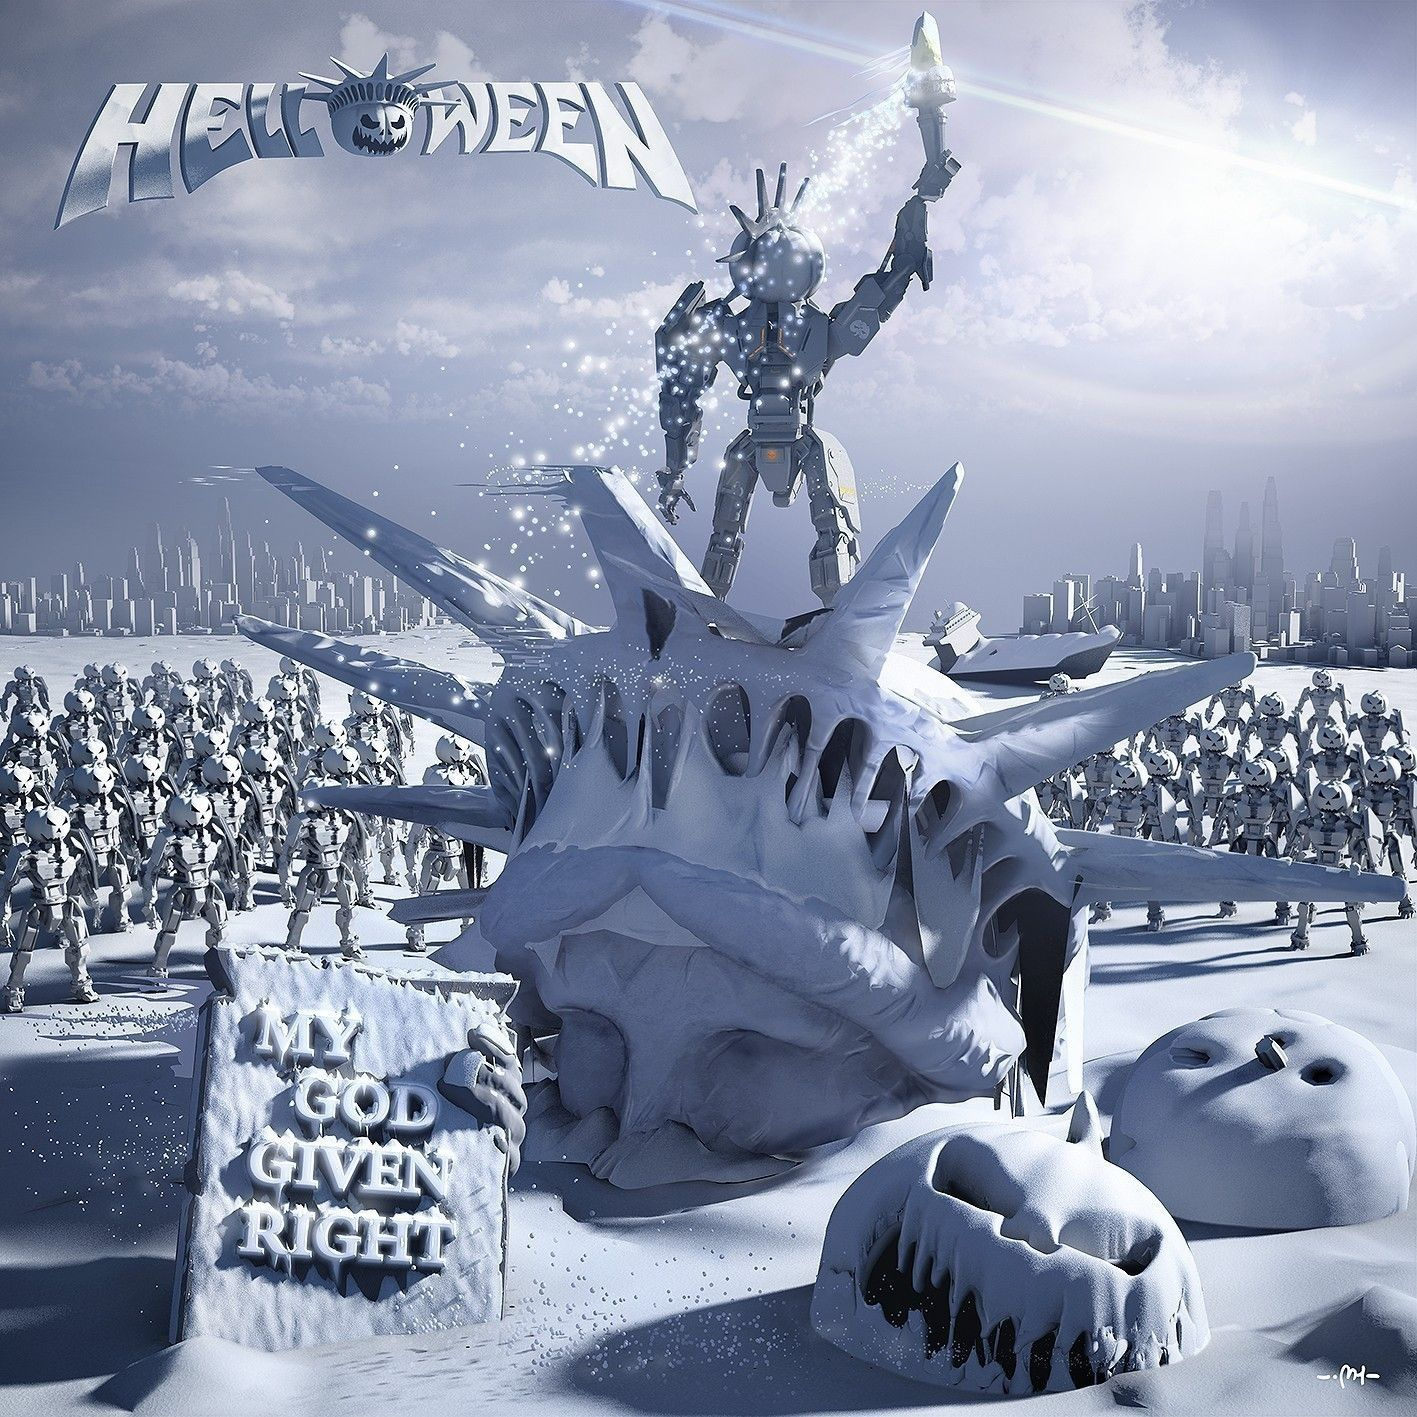 CD - Helloween - My God Given Right